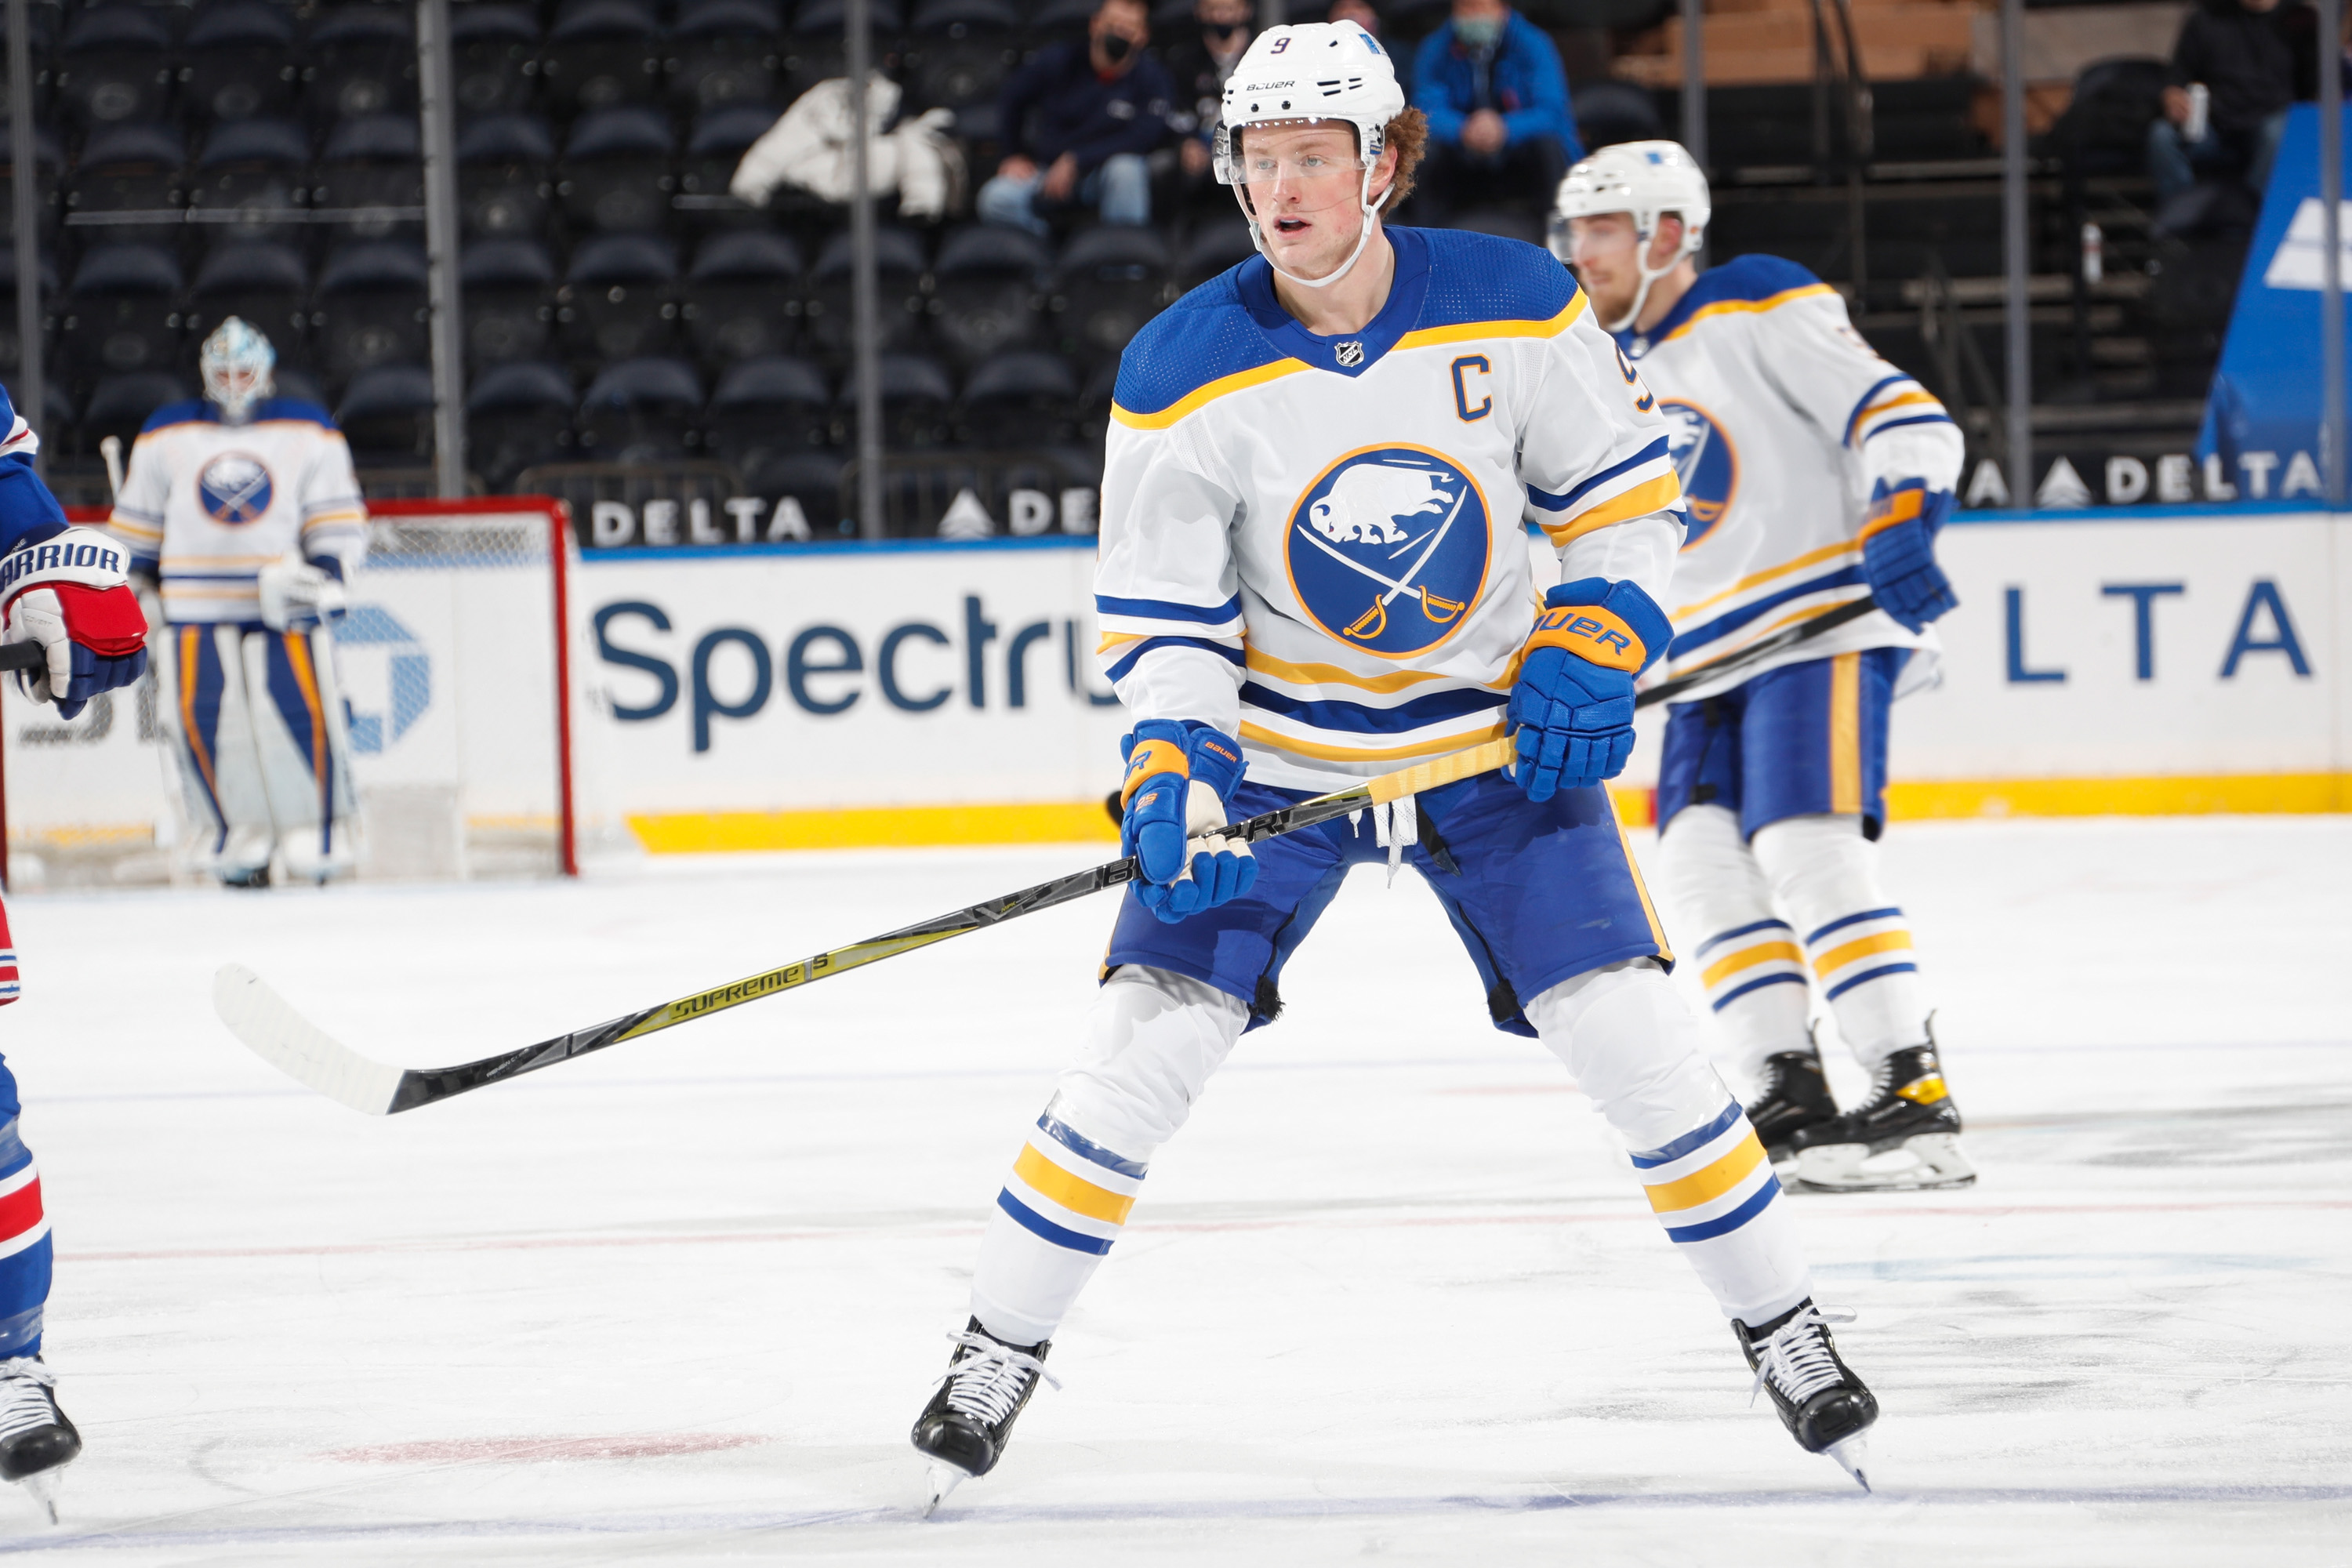 Jack Eichel #9 of the Buffalo Sabres skates against the New York Rangers at Madison Square Garden on March 2, 2021 in New York City.